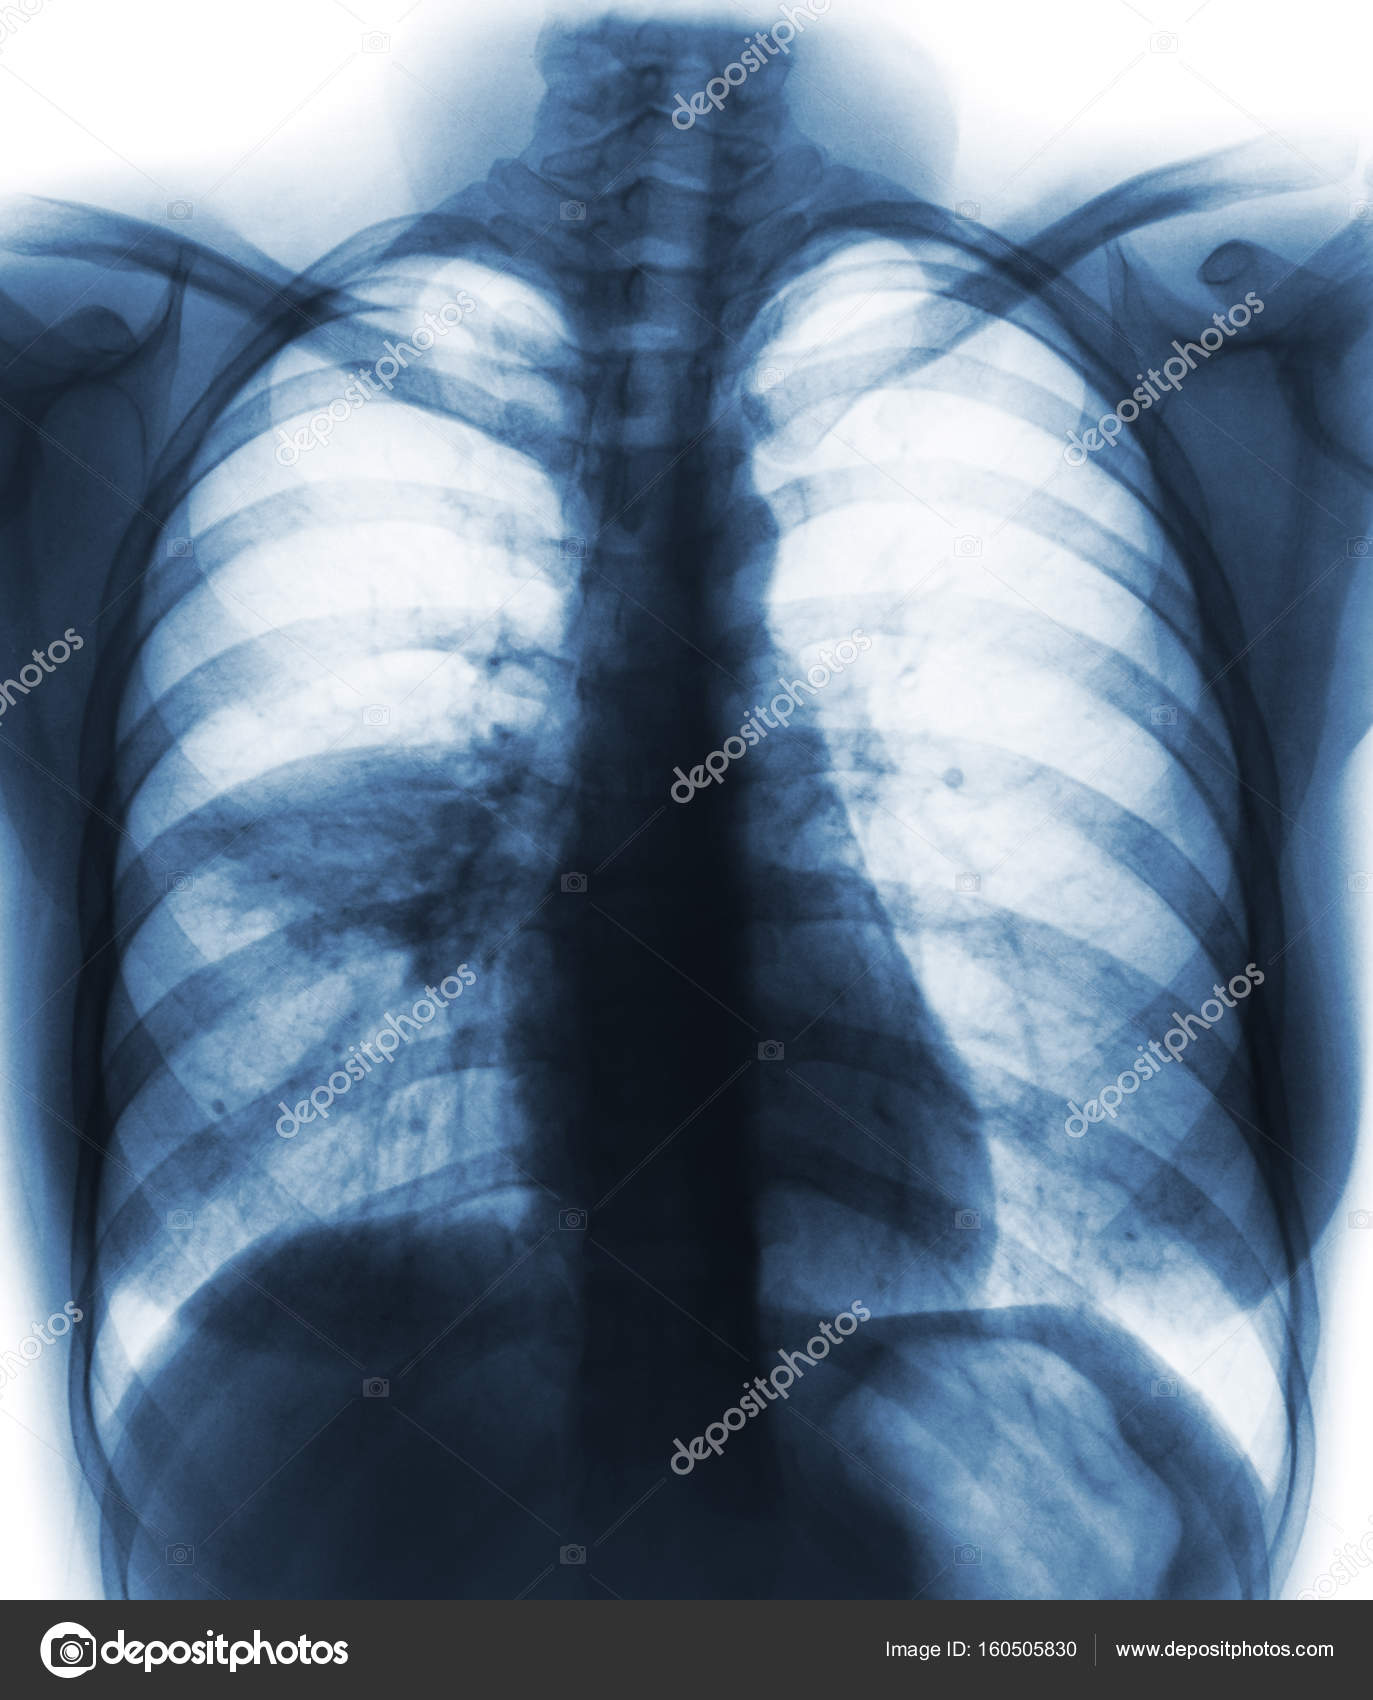 Pneumonia ( film chest x-ray show alveolar infiltrate at right ...